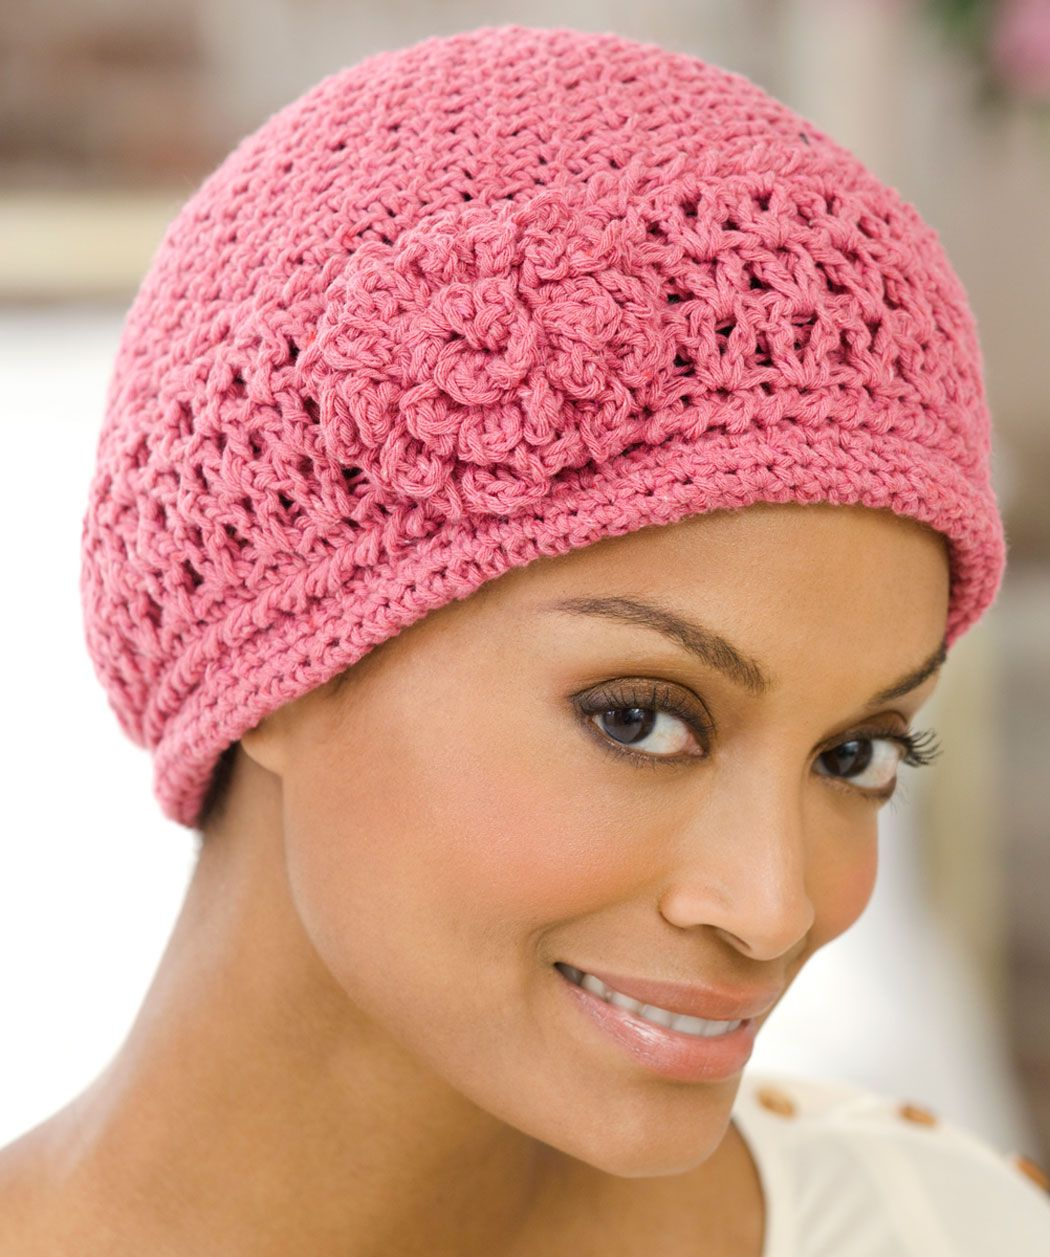 Red Heart Chemo Cap Crochet Pattern Breastcancerawareness